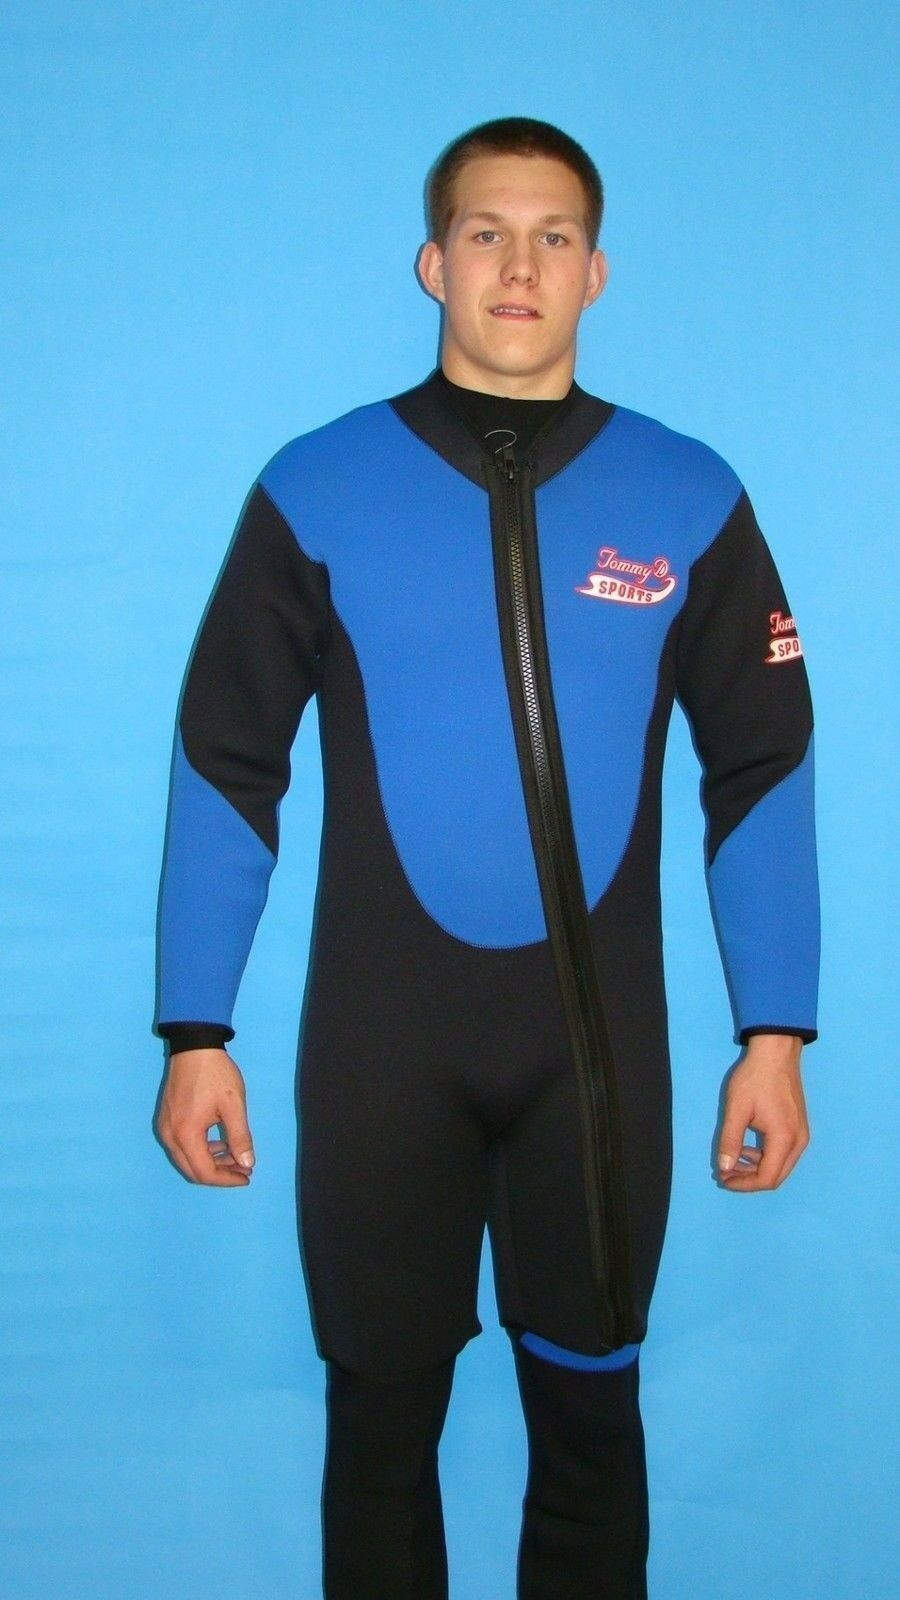 Wetsuit 5mm Farmer John Wetsuit - 2 Piece   - 9000 - Medium  for your style of play at the cheapest prices